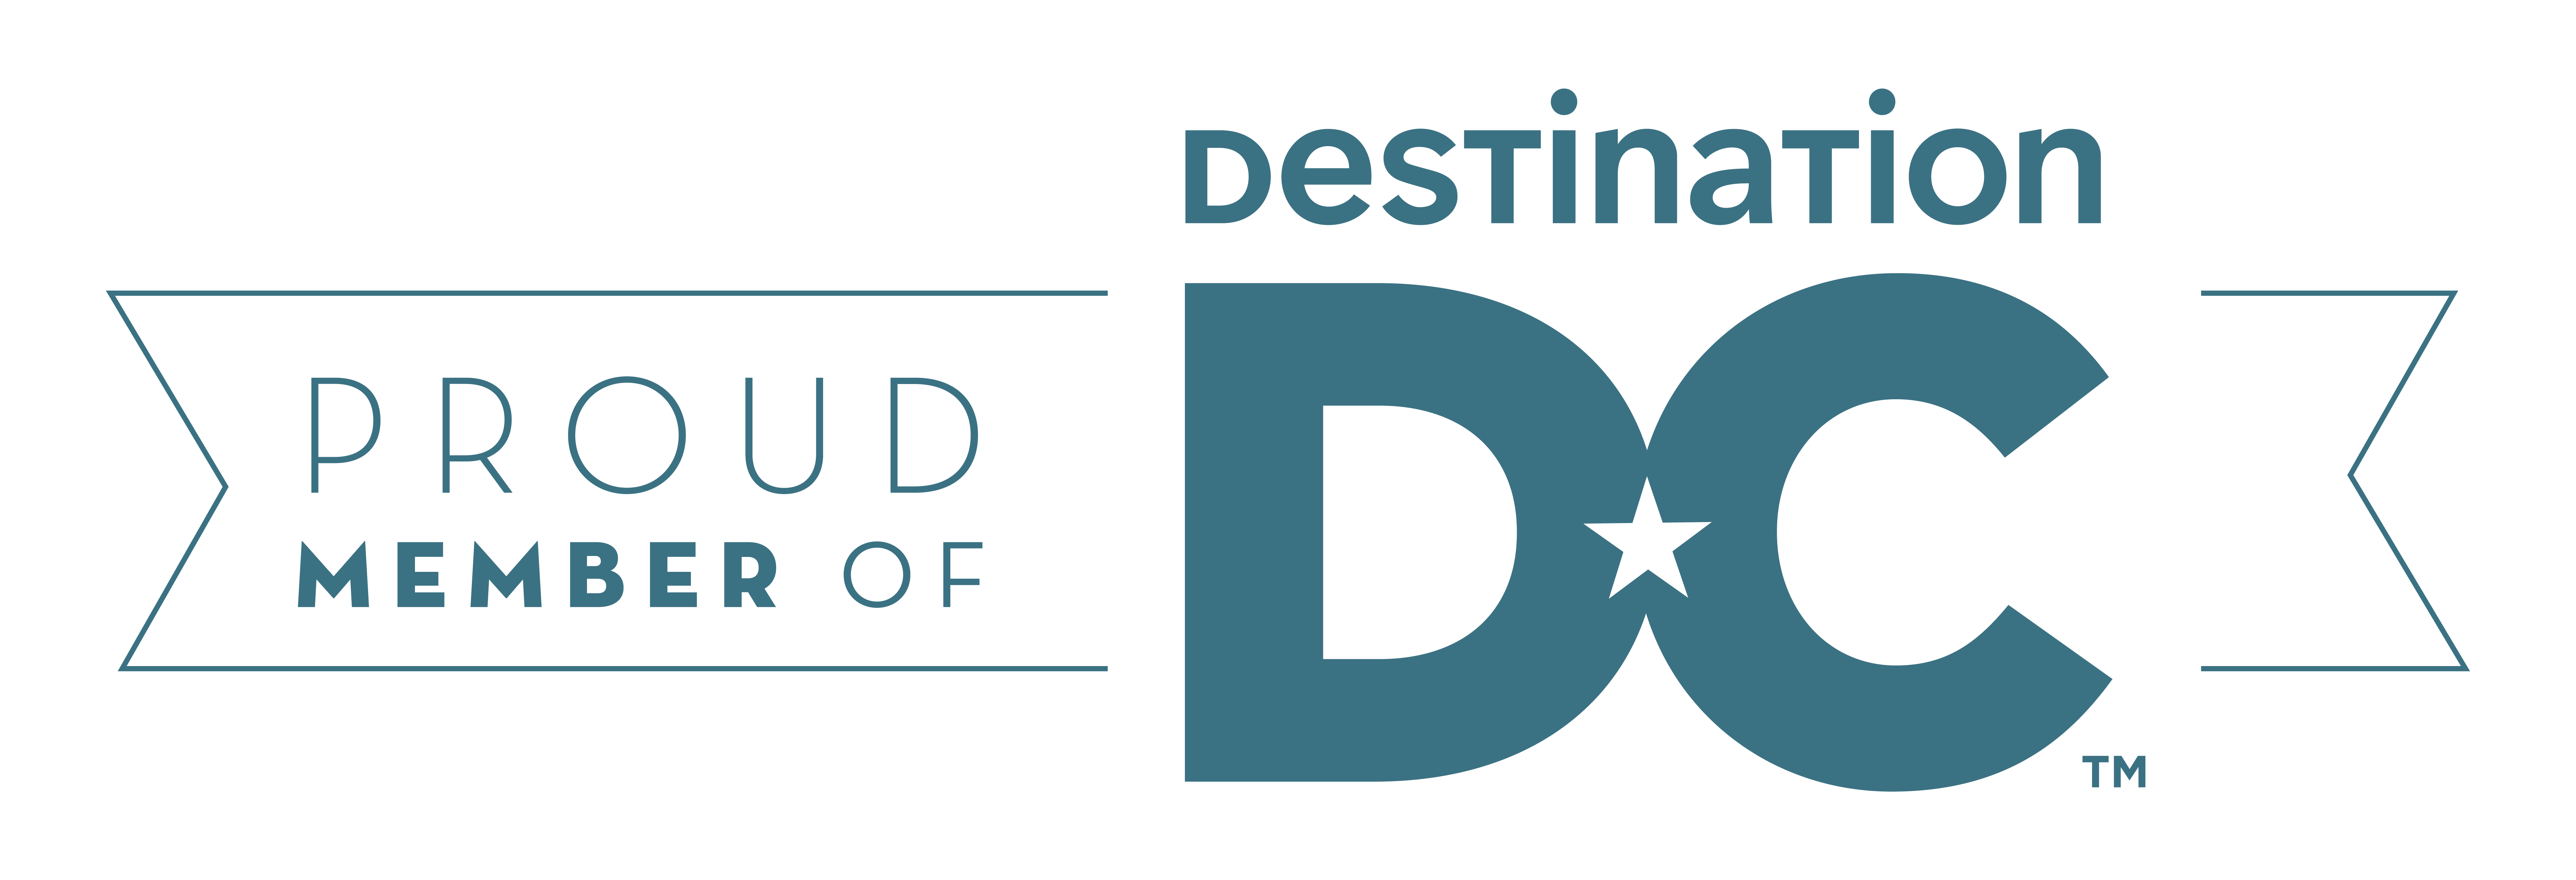 member-destination-dc